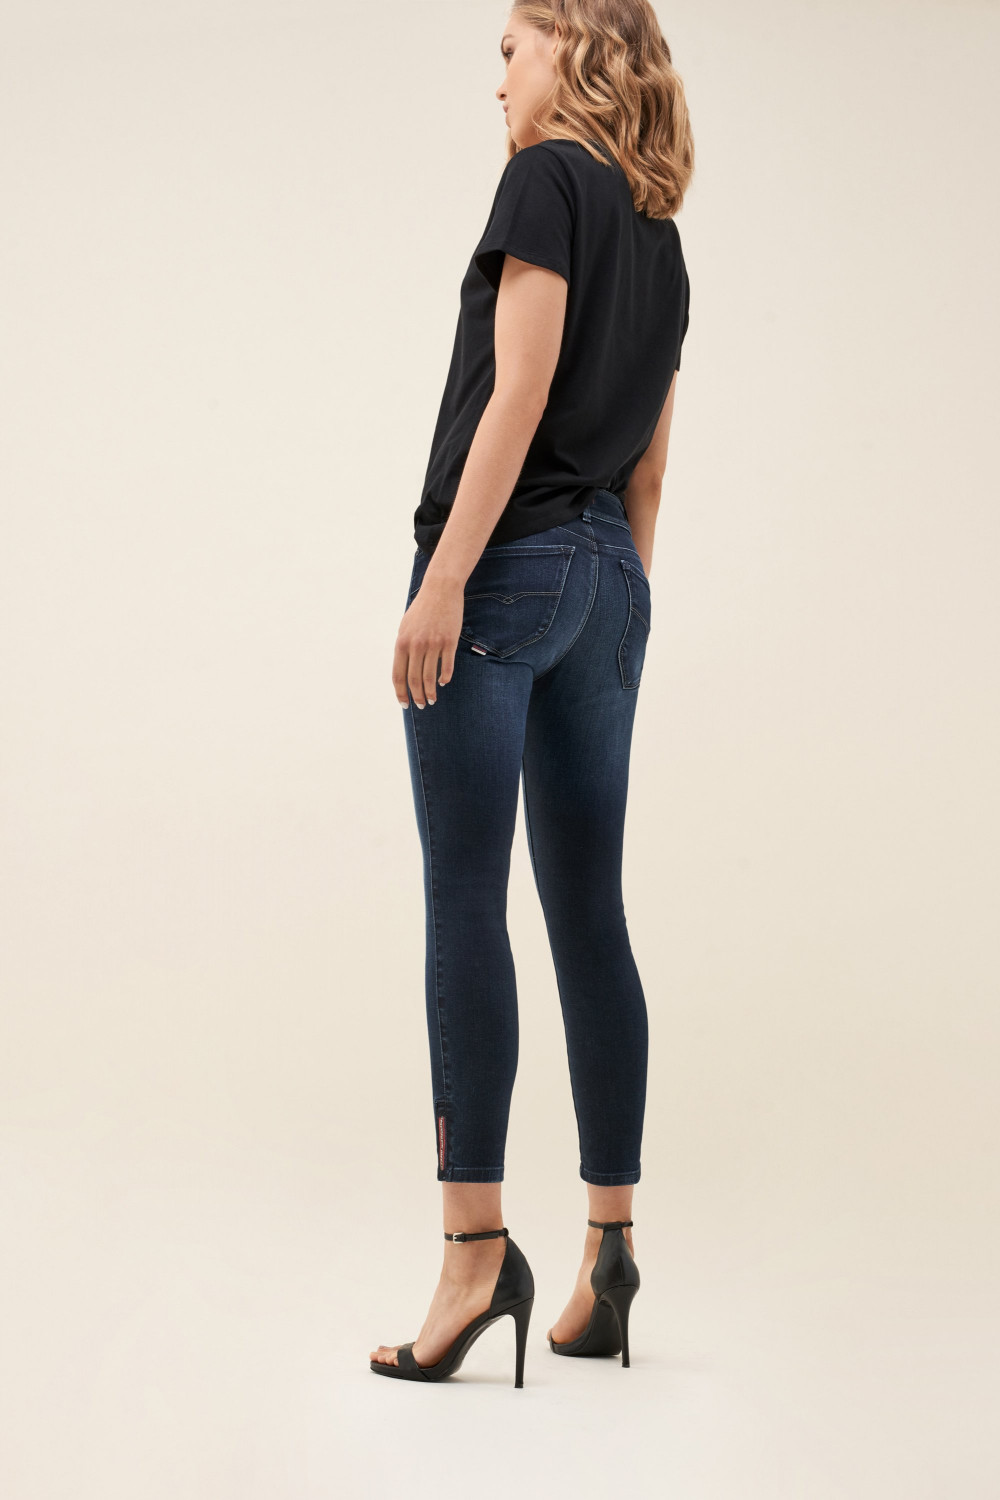 Push In Secret capri jeans with detail on hem